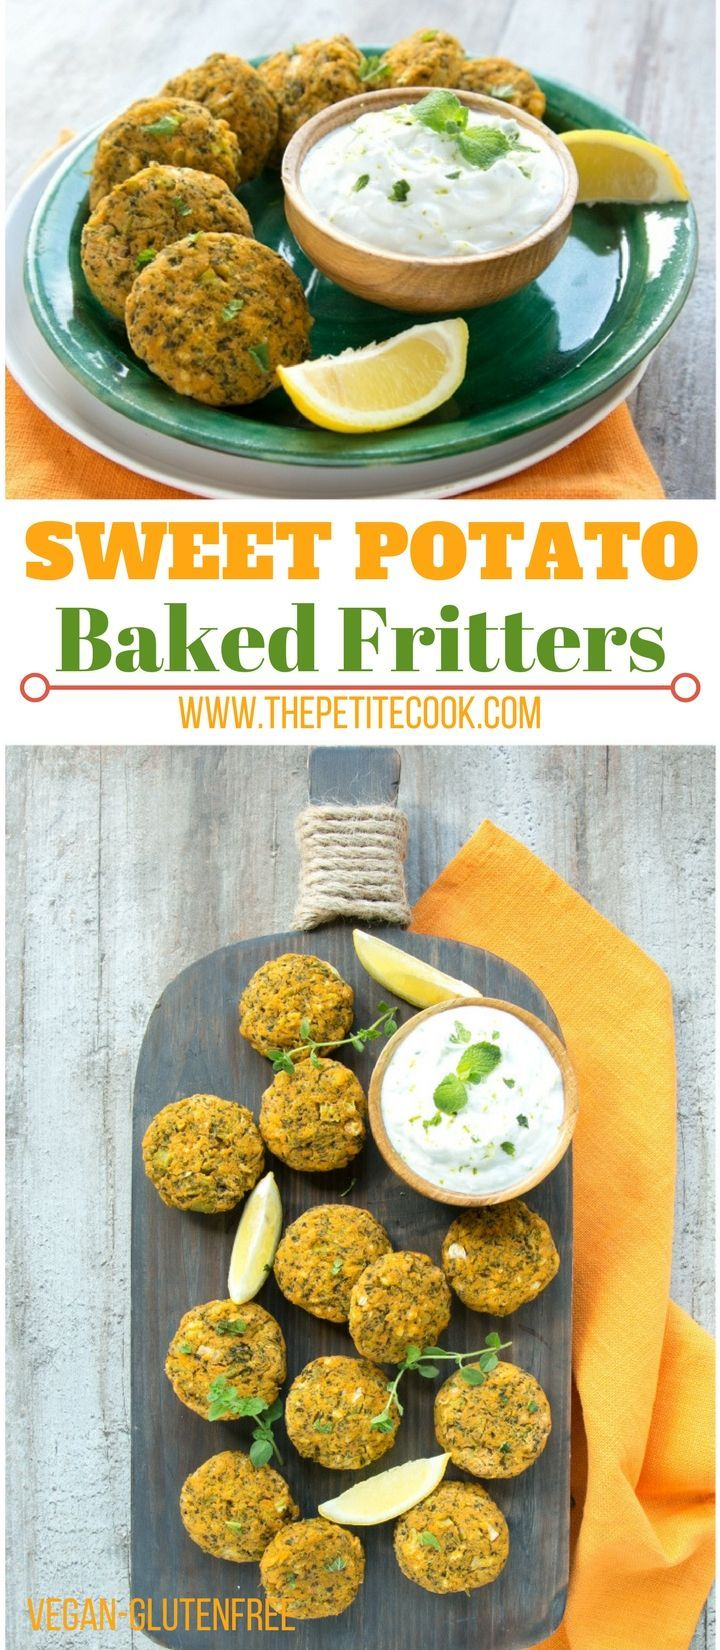 Crispy on the outside and tender on the inside, these healthy baked Veggie Sweet Potato Fritters are ready on the table in 30 minutes and awesomely #vegan & #glutenfree #dairyfree - Recipe by The Petite Cook